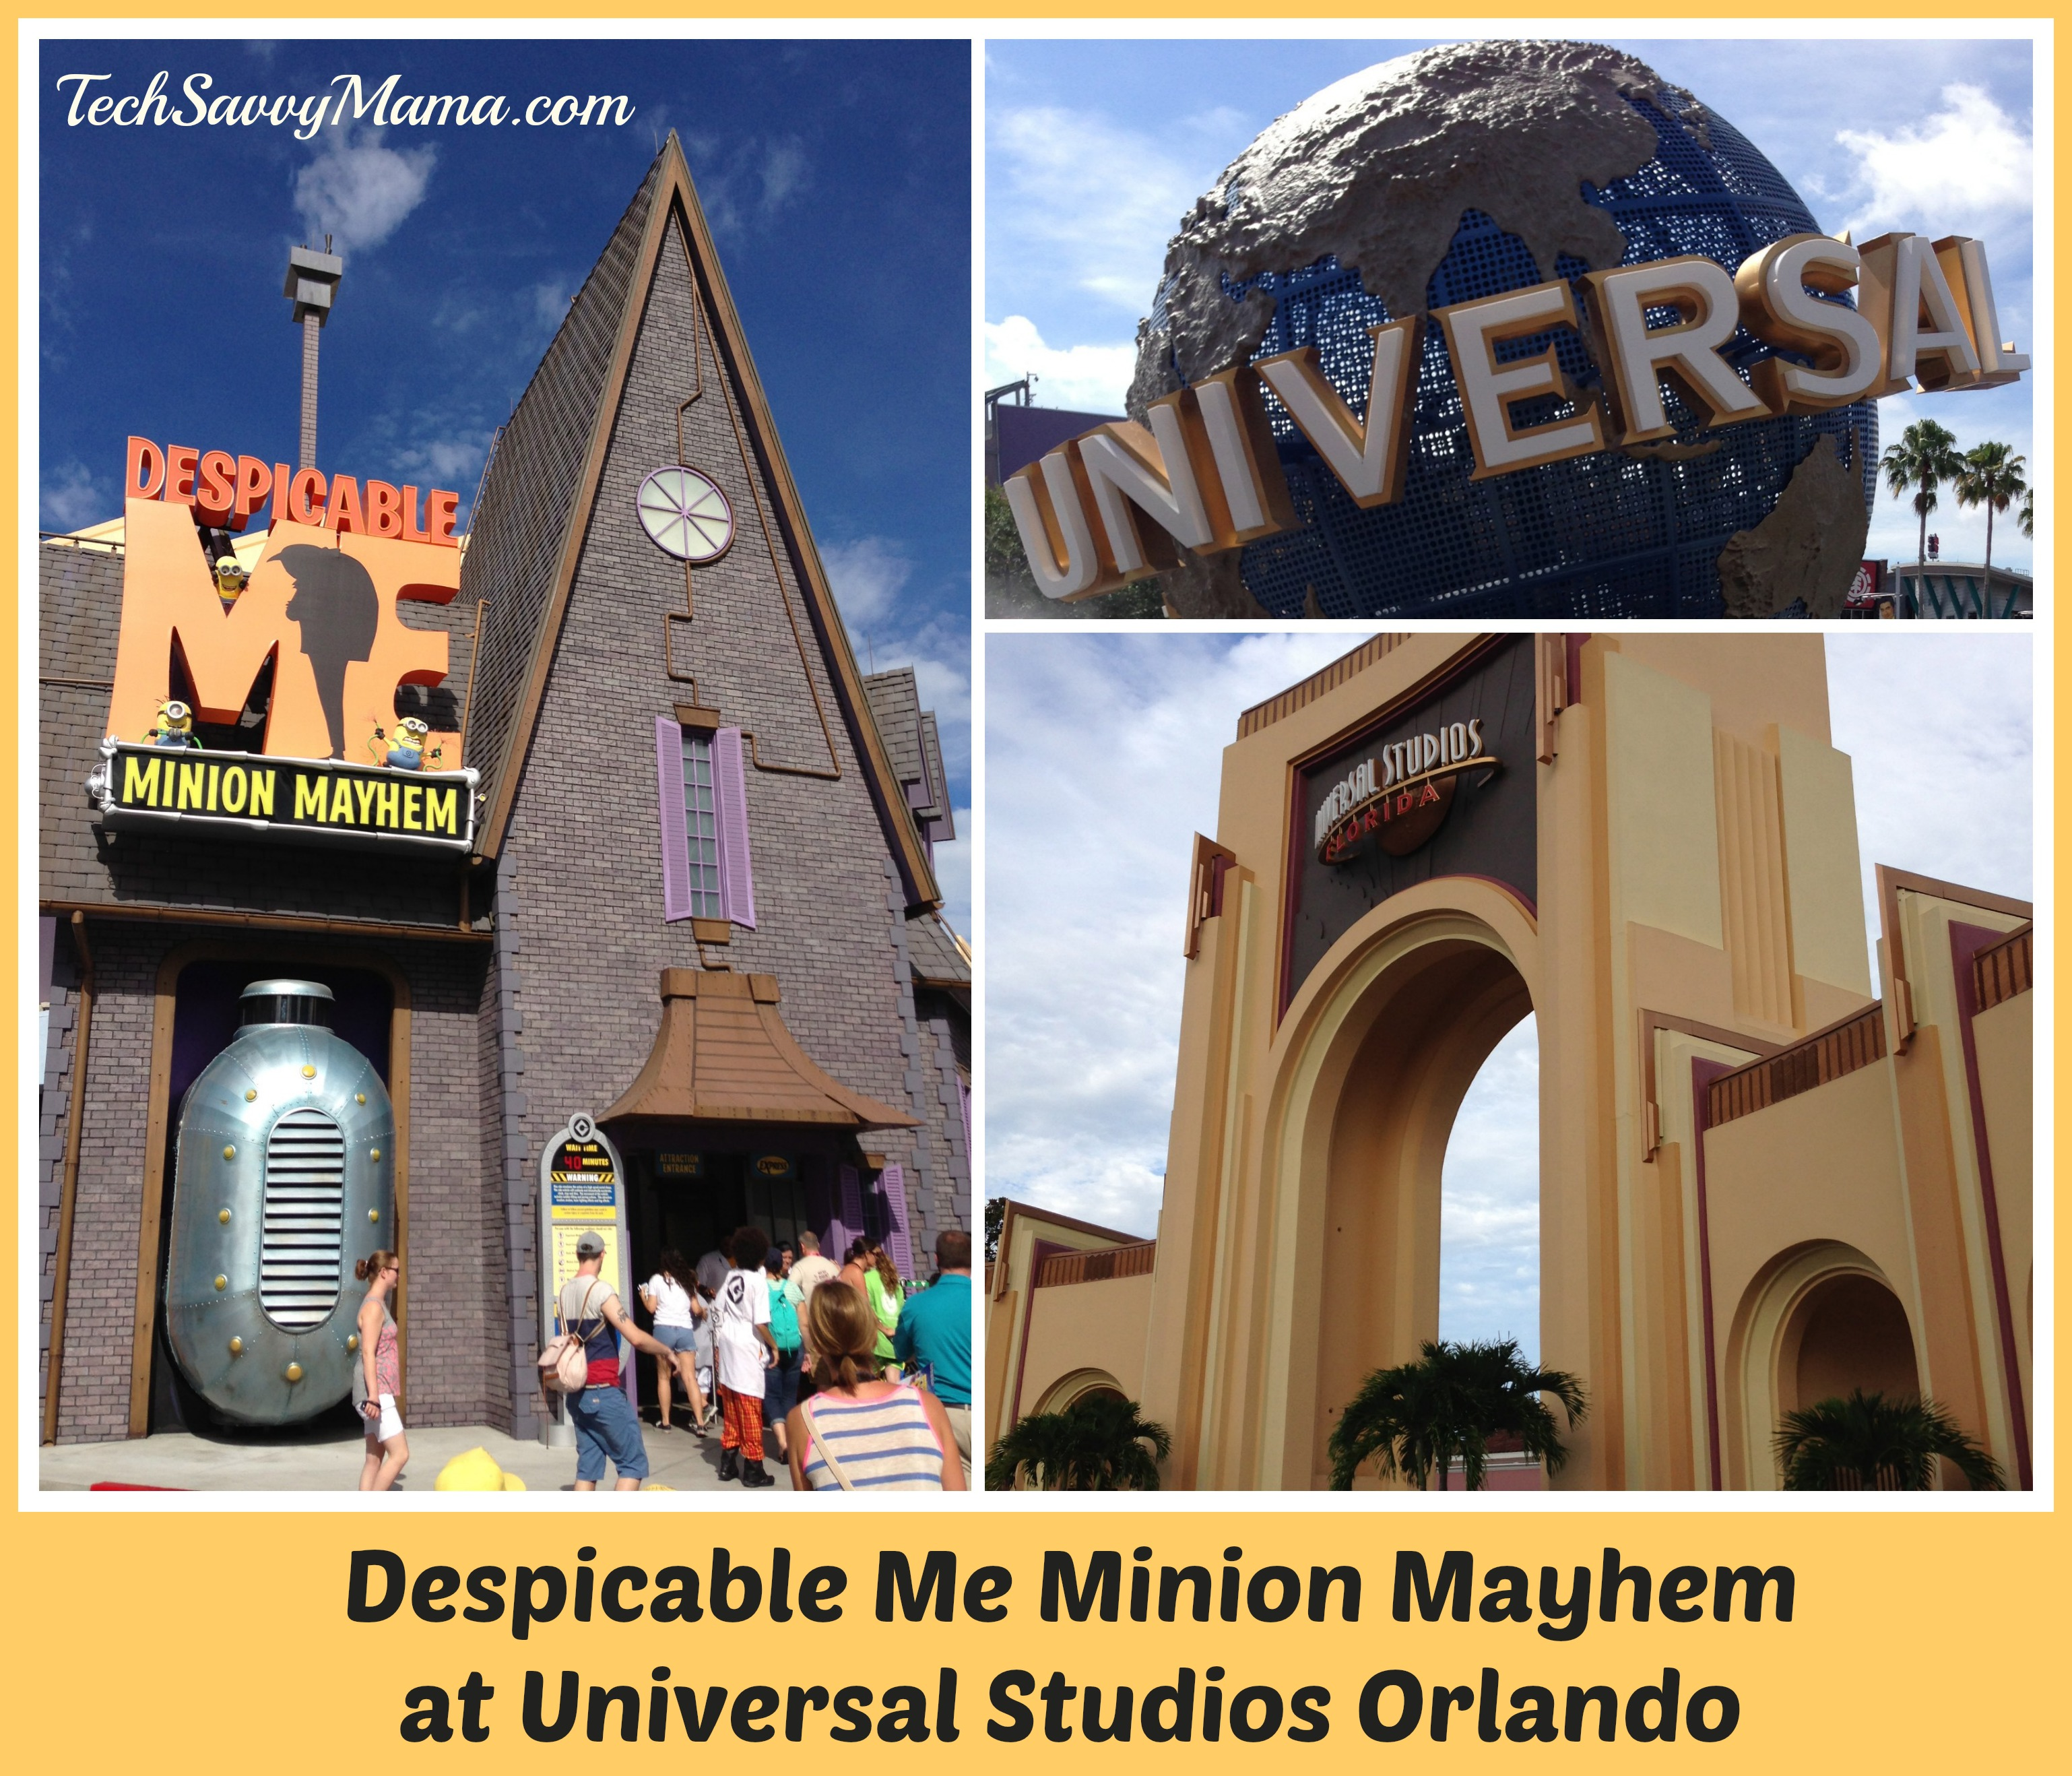 Despicable Me Minion Mayhem Ride at Universal Studios Orlando During #DM2Orlando